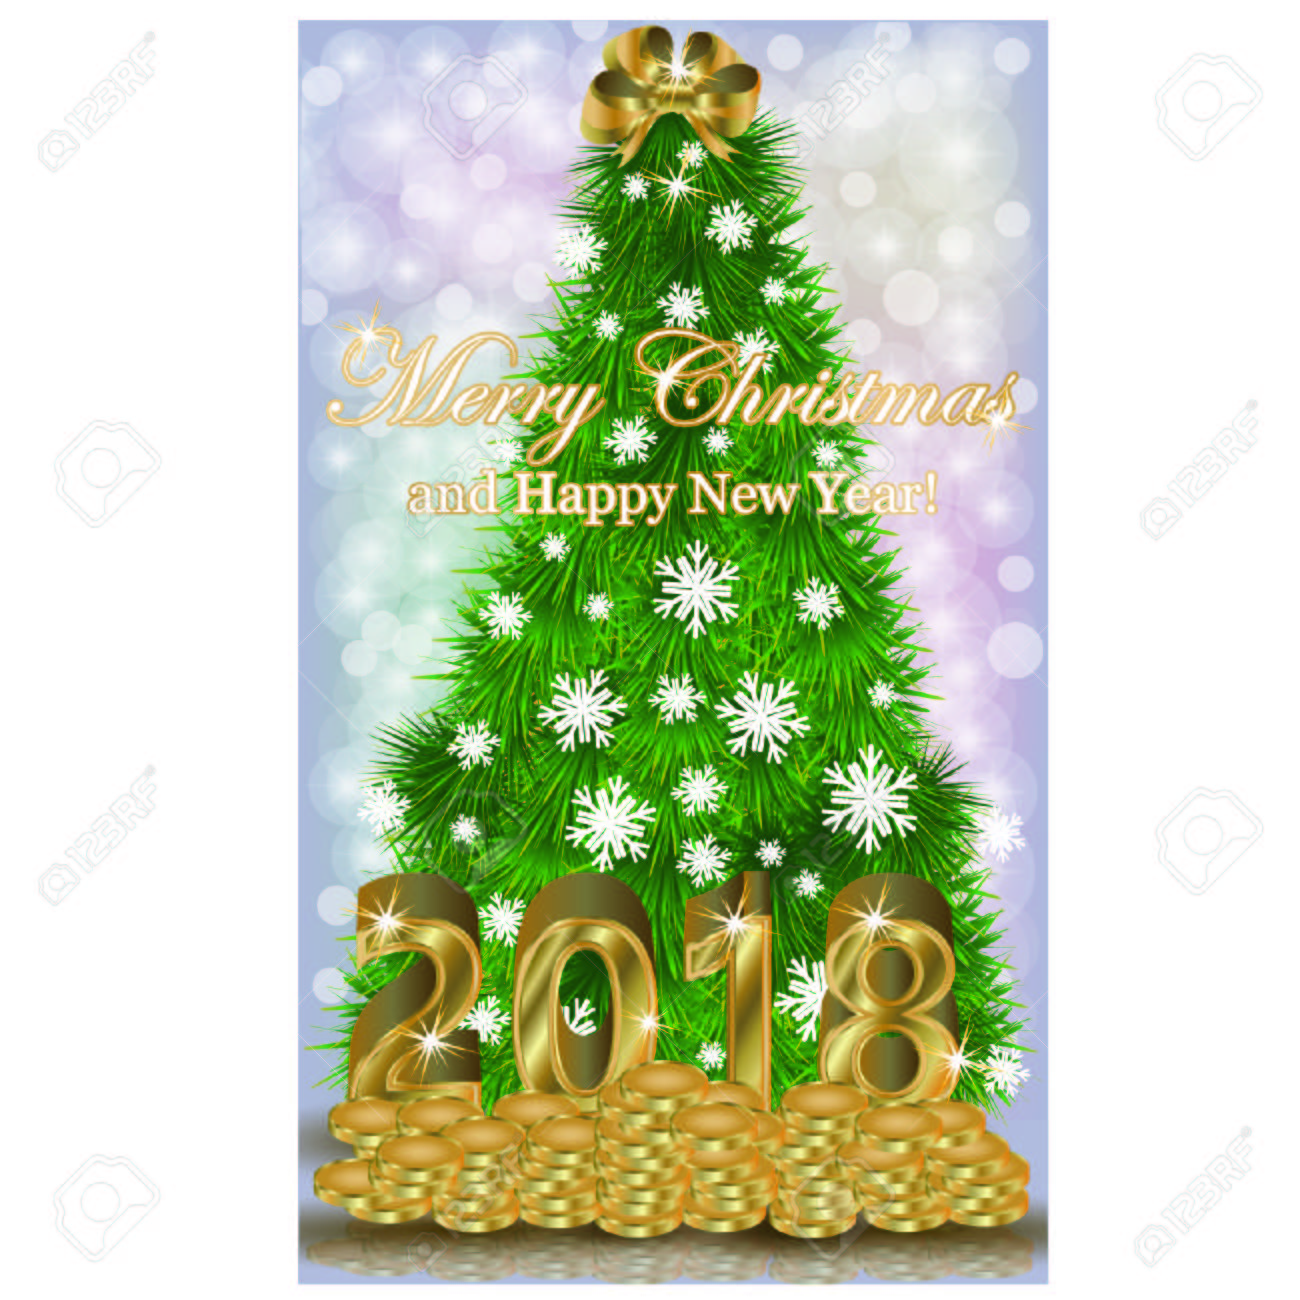 Merry Christmas And Happy New Year 2018 Golden Coins Card, Vector ...